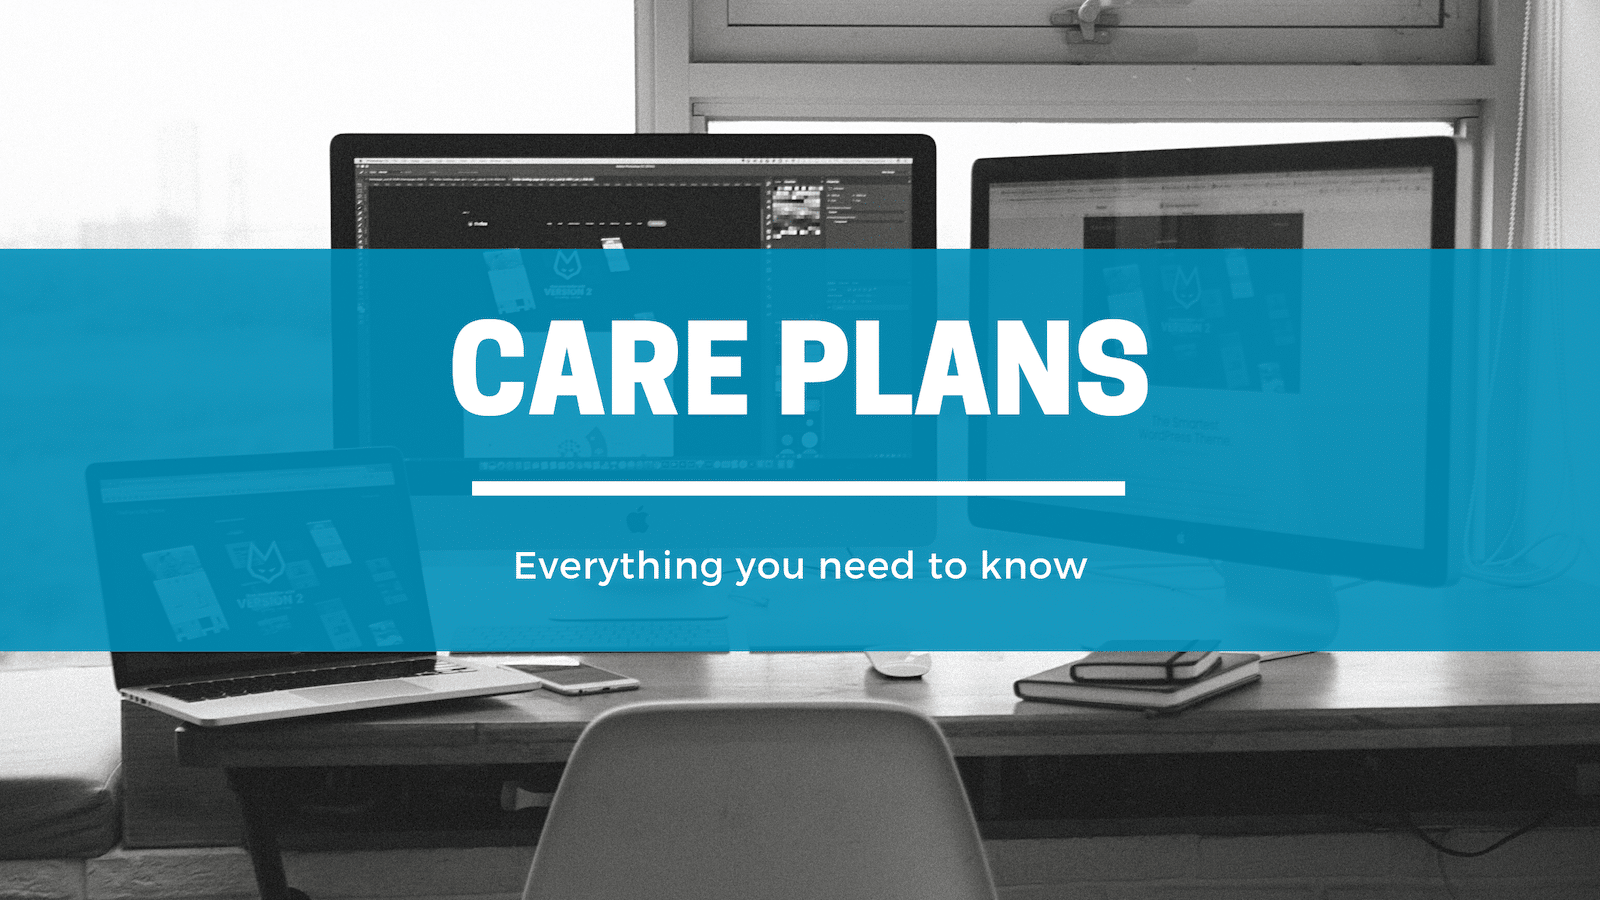 Care Plans Need to Know - Click Results - Blog - Featured Image